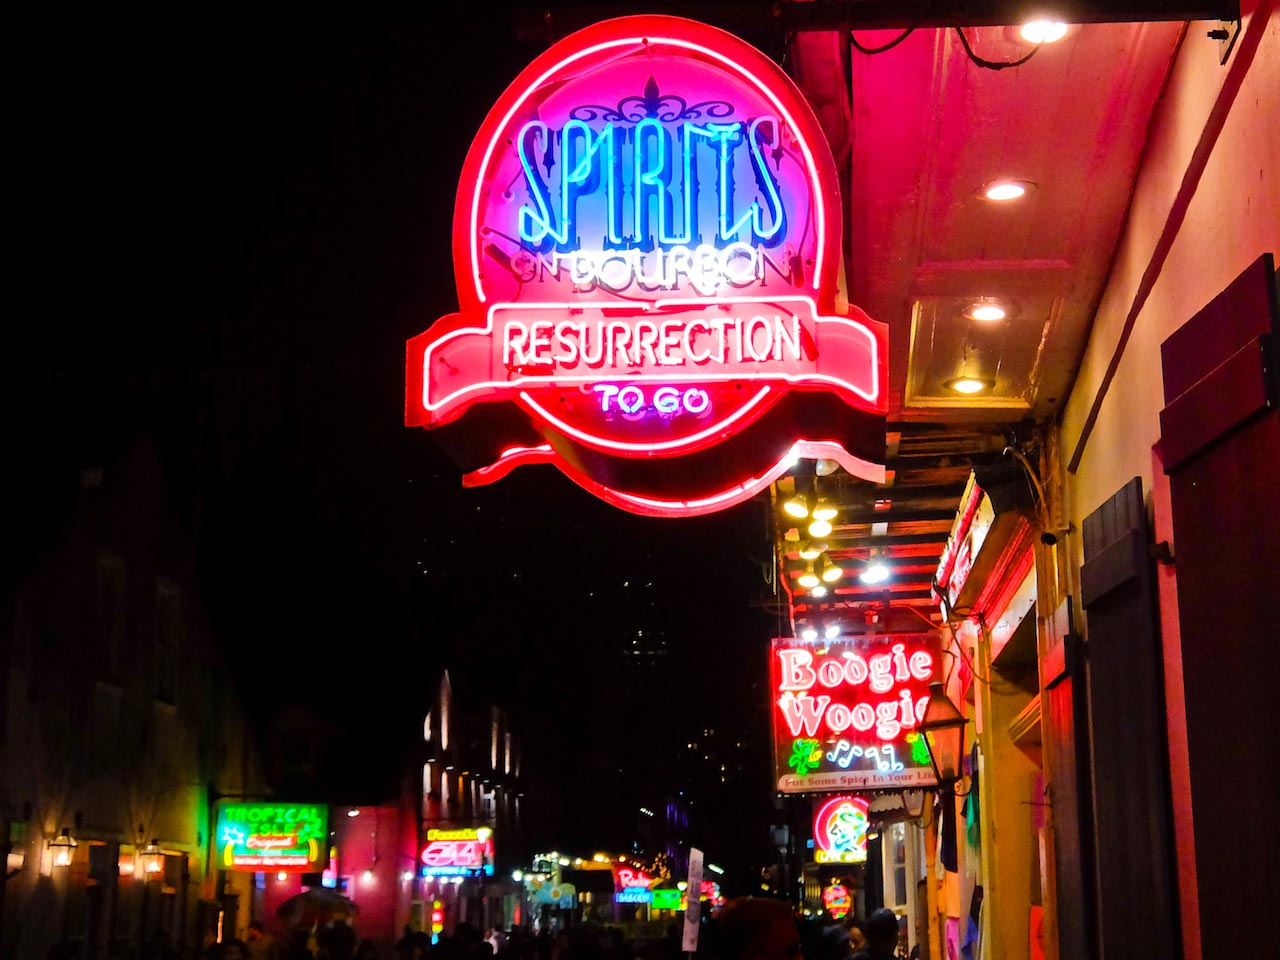 New Orleans: Bourbon Street at night